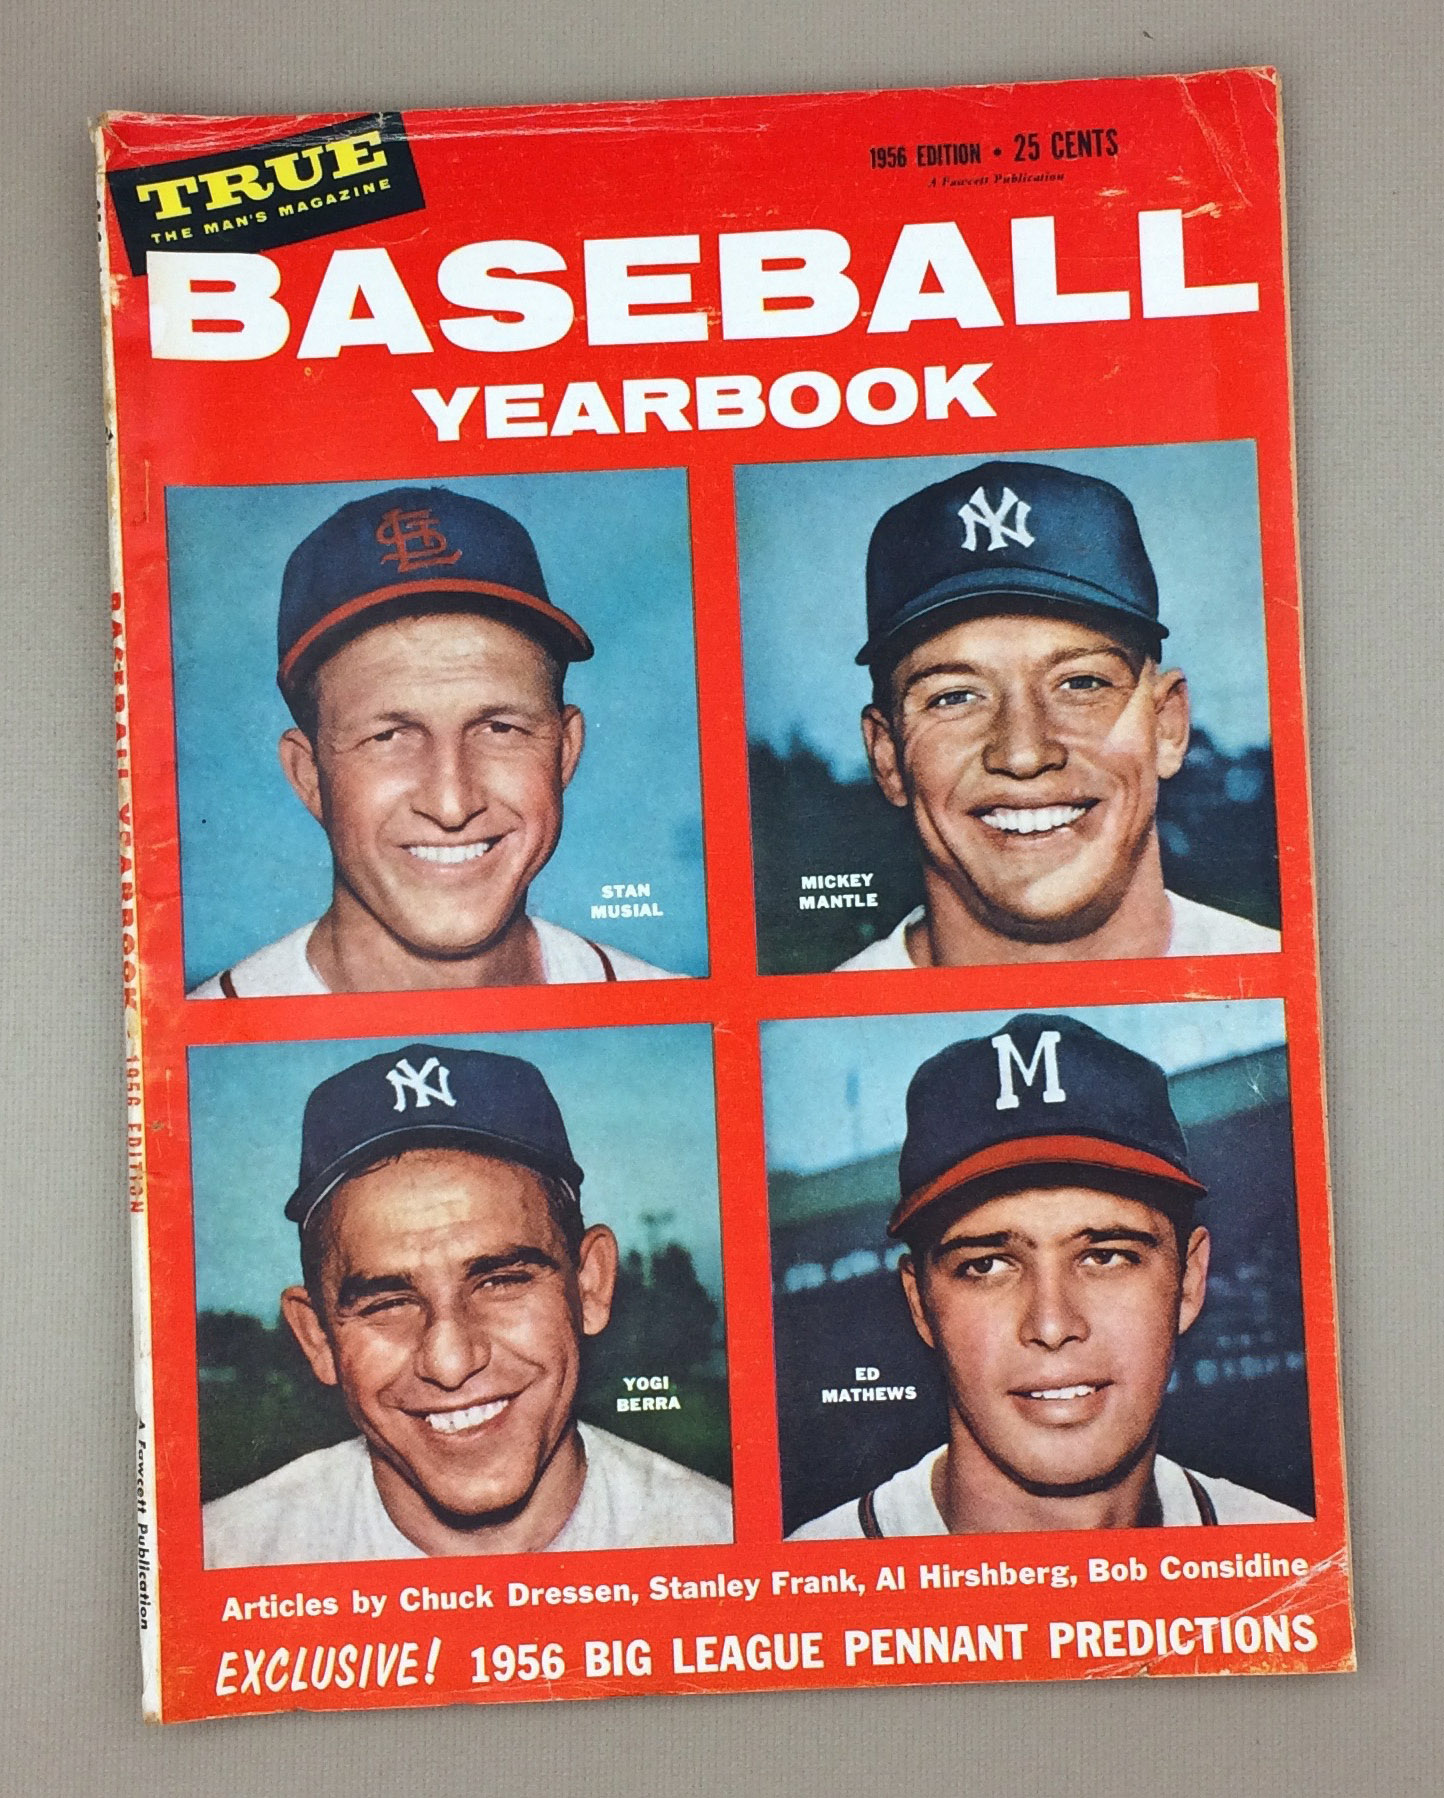 BASEBALL YEARBOOK Magazine 1956